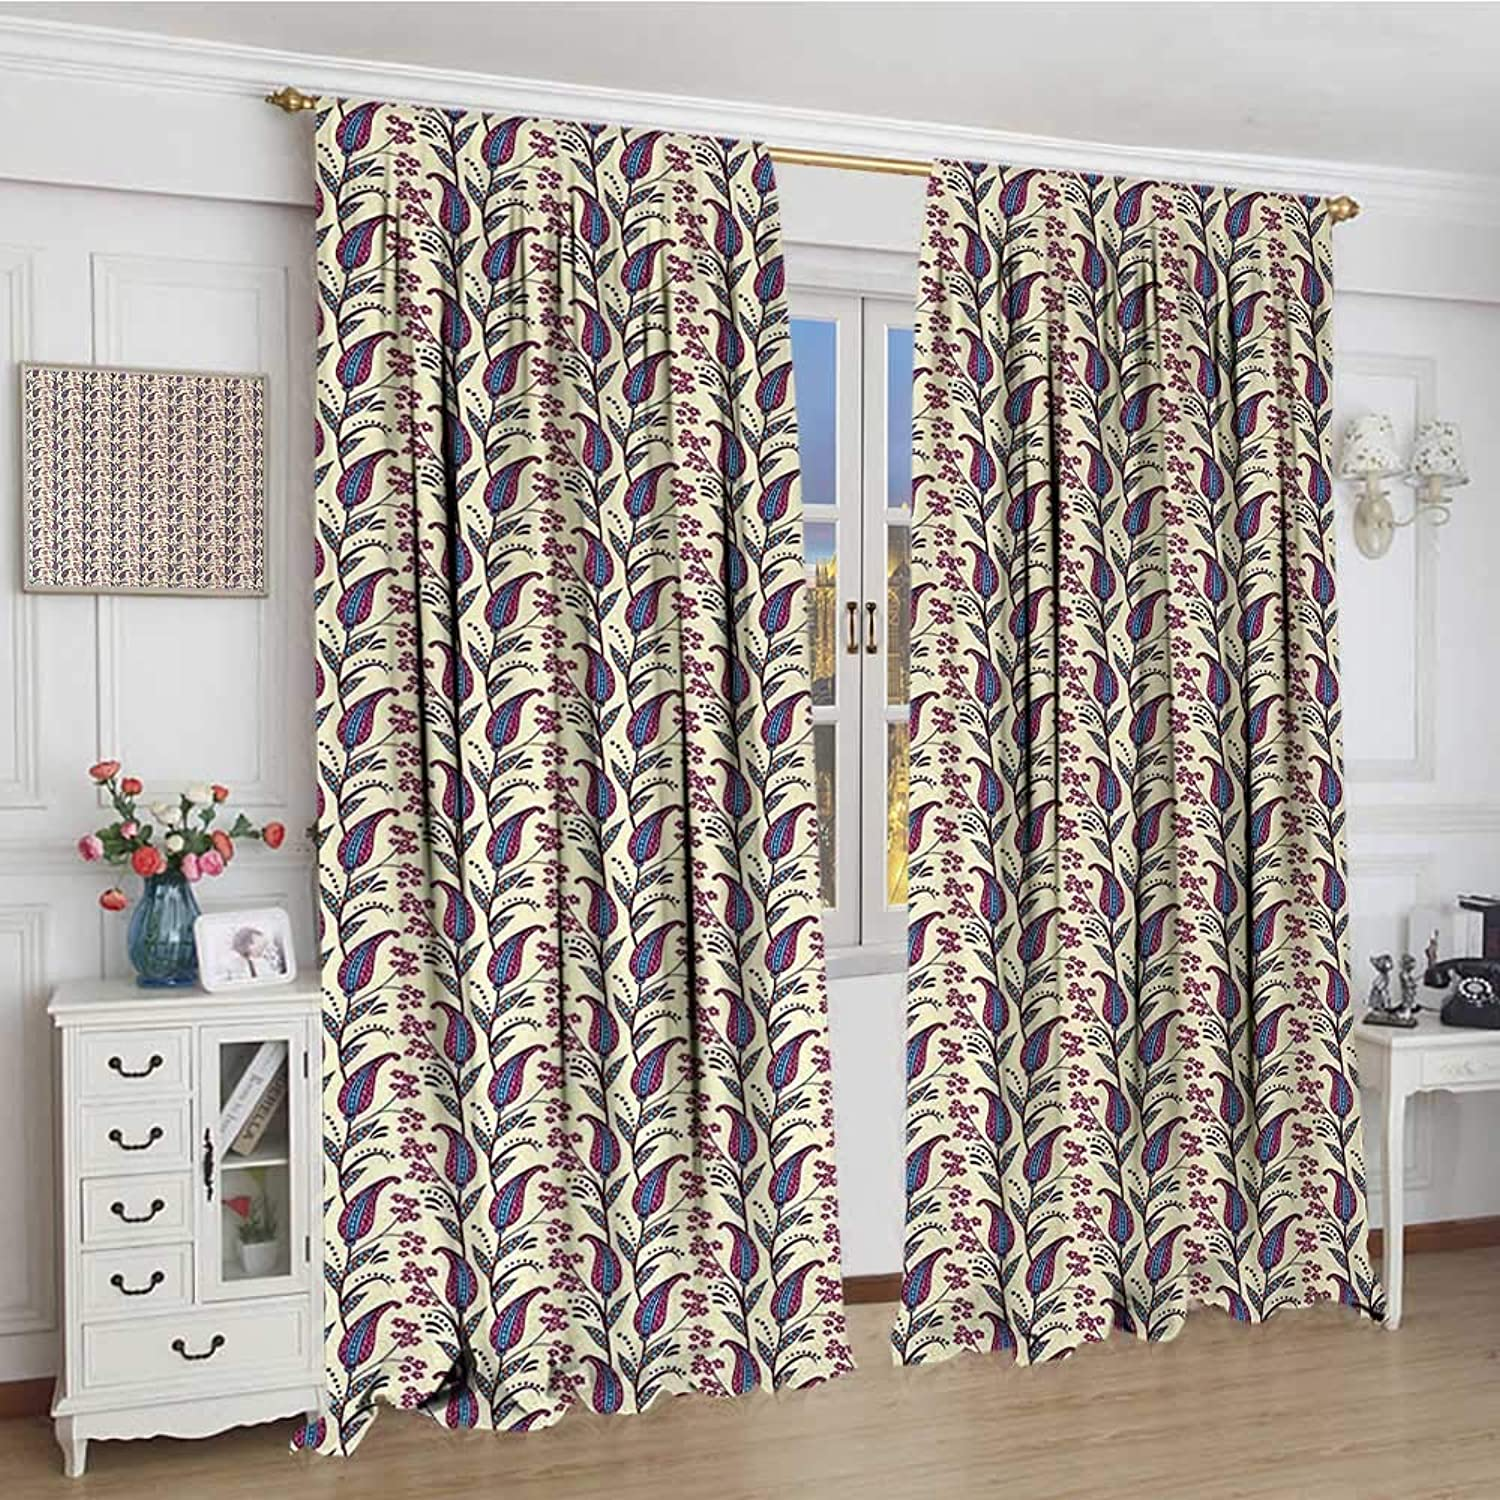 Smallbeefly Paisley Patterned Drape for Glass Door Artistic and Ornamental Flowers Blossoming on Leafy Branches with Little Daisies Decor Curtains by 108 x108  Multicolor